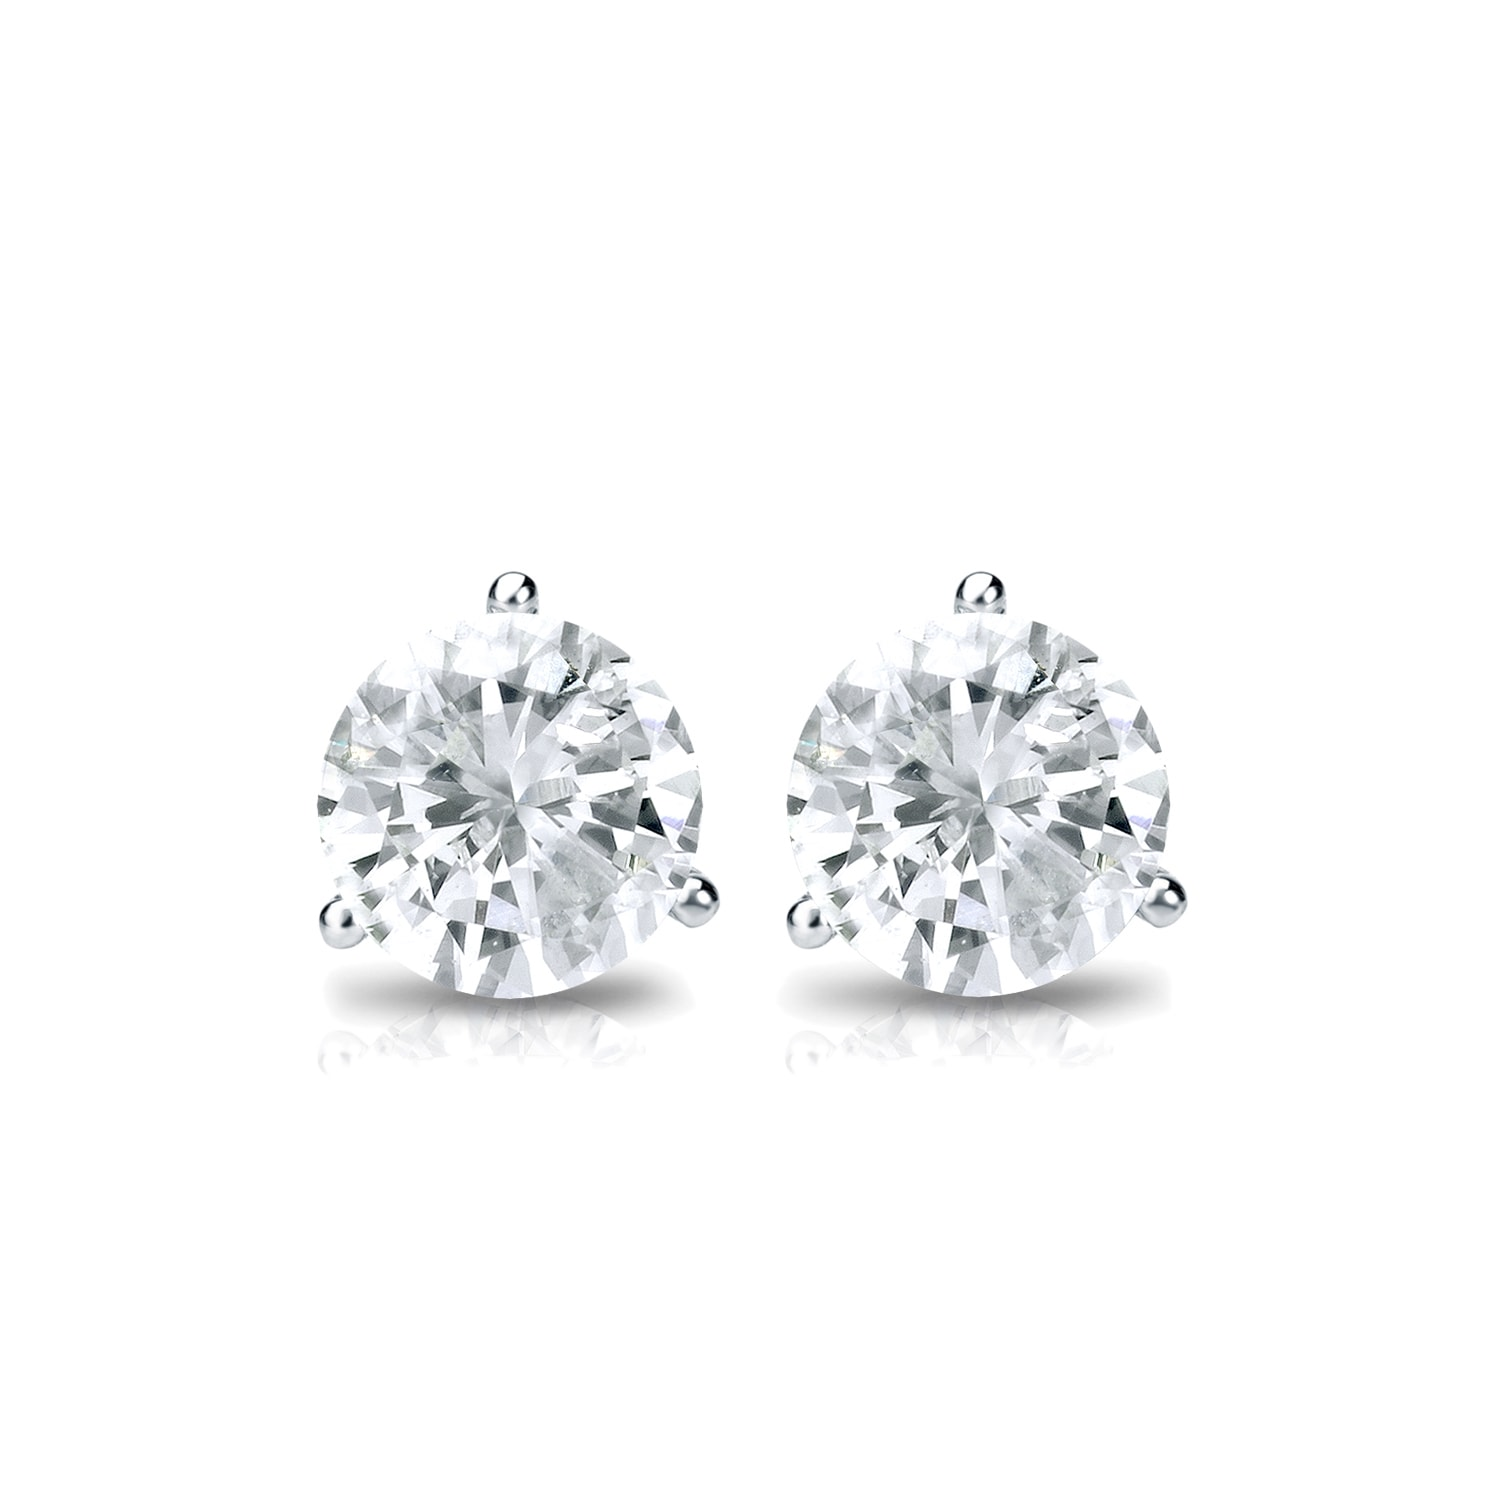 martini prong in brilliant diamond cut round pin stud mounting earrings